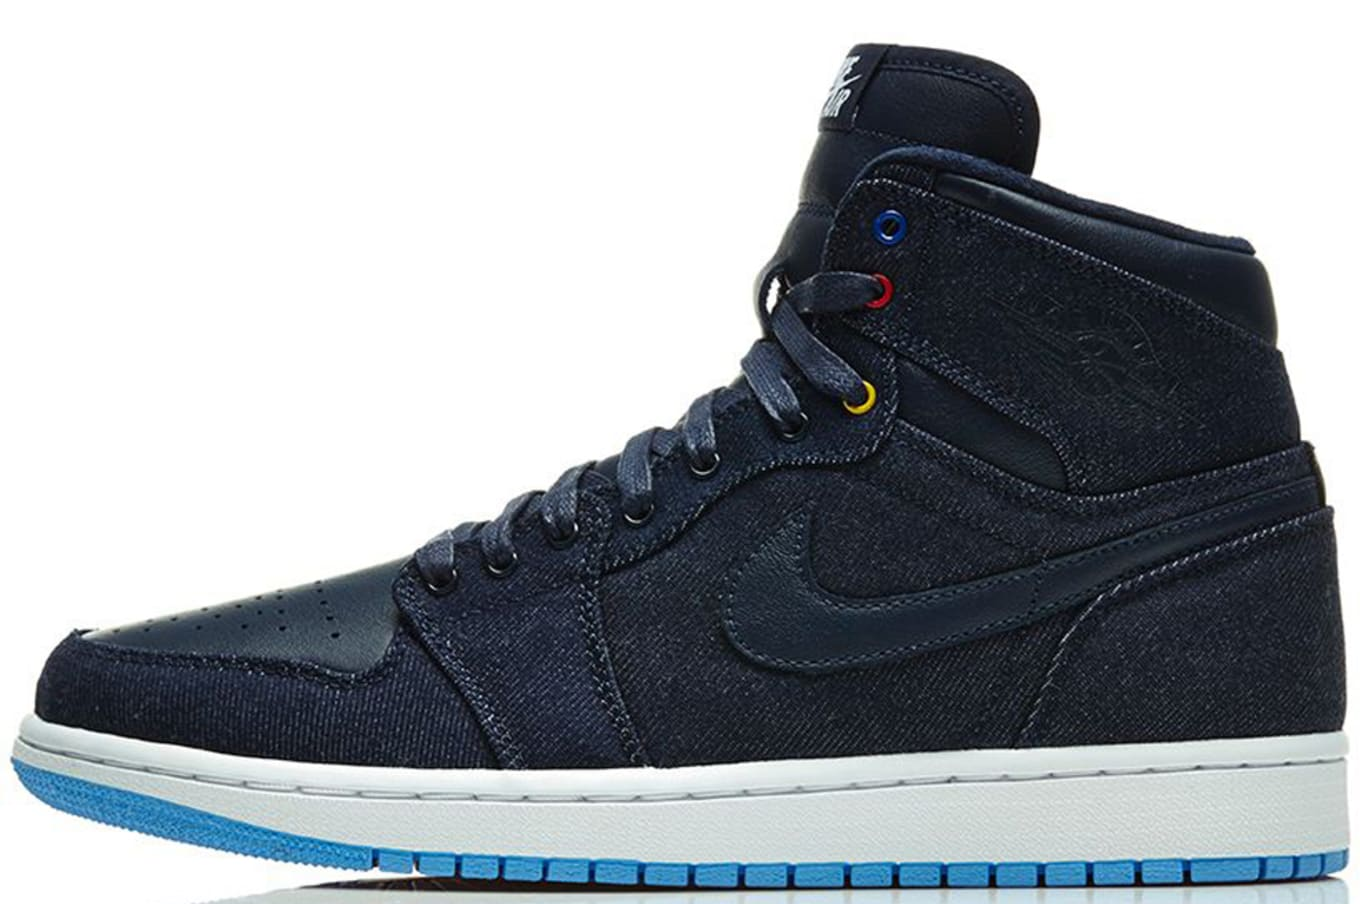 0d6b88328e3b Air Jordan 1 Retro High OG Obsidian White Dark Powder Blue Game Royal